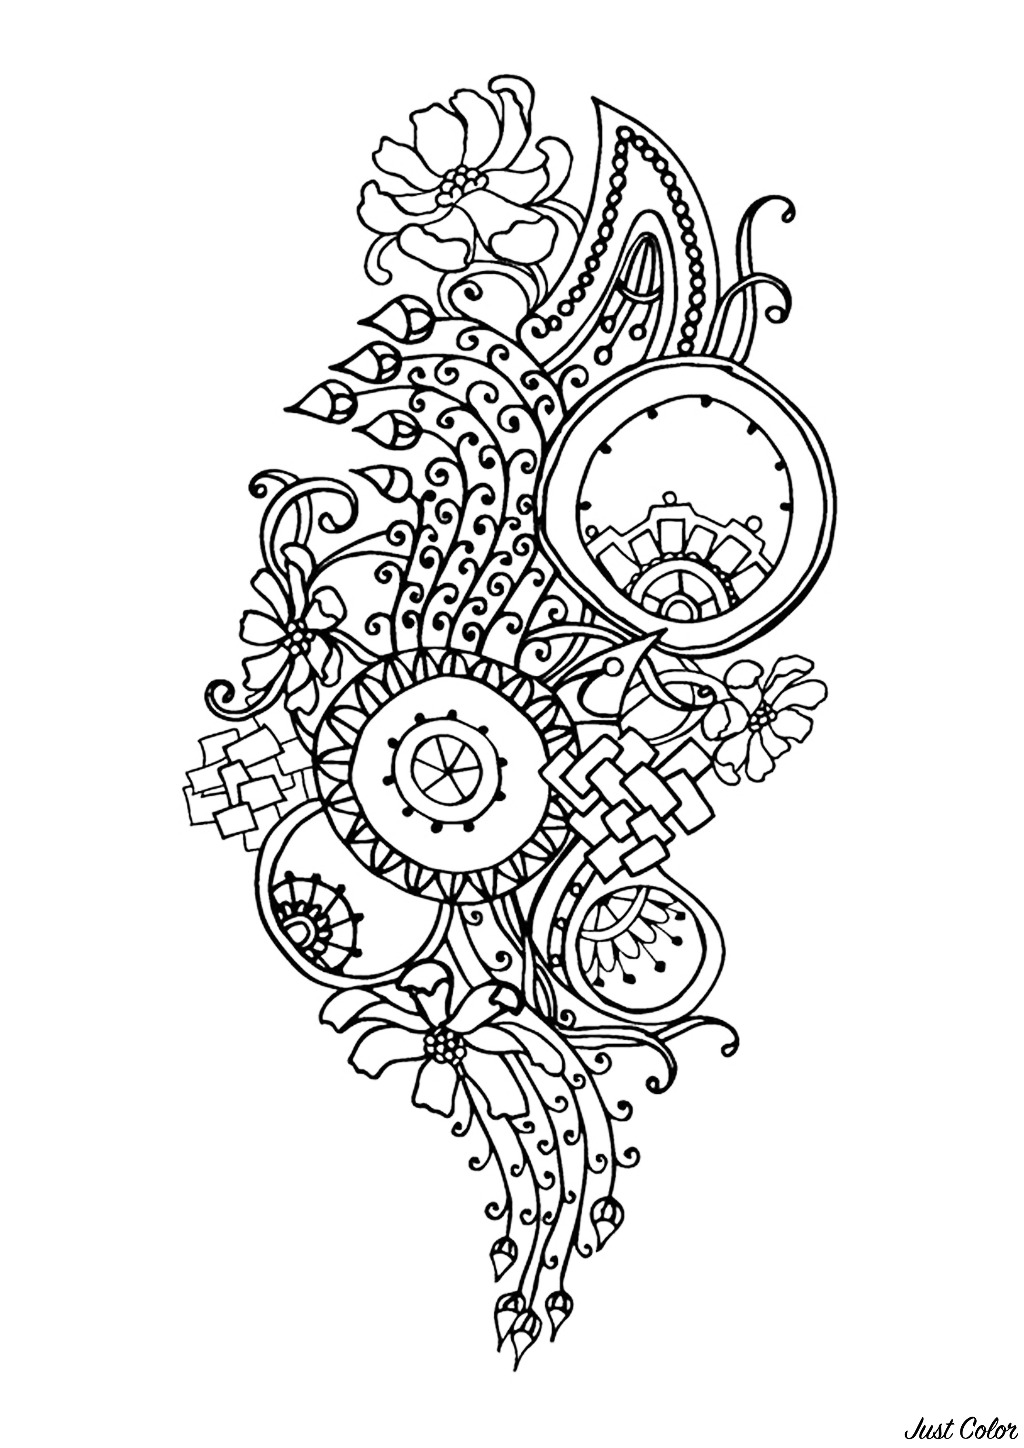 Zen & Anti-stress Coloring page : Abstract pattern inspired by flowers : n°6